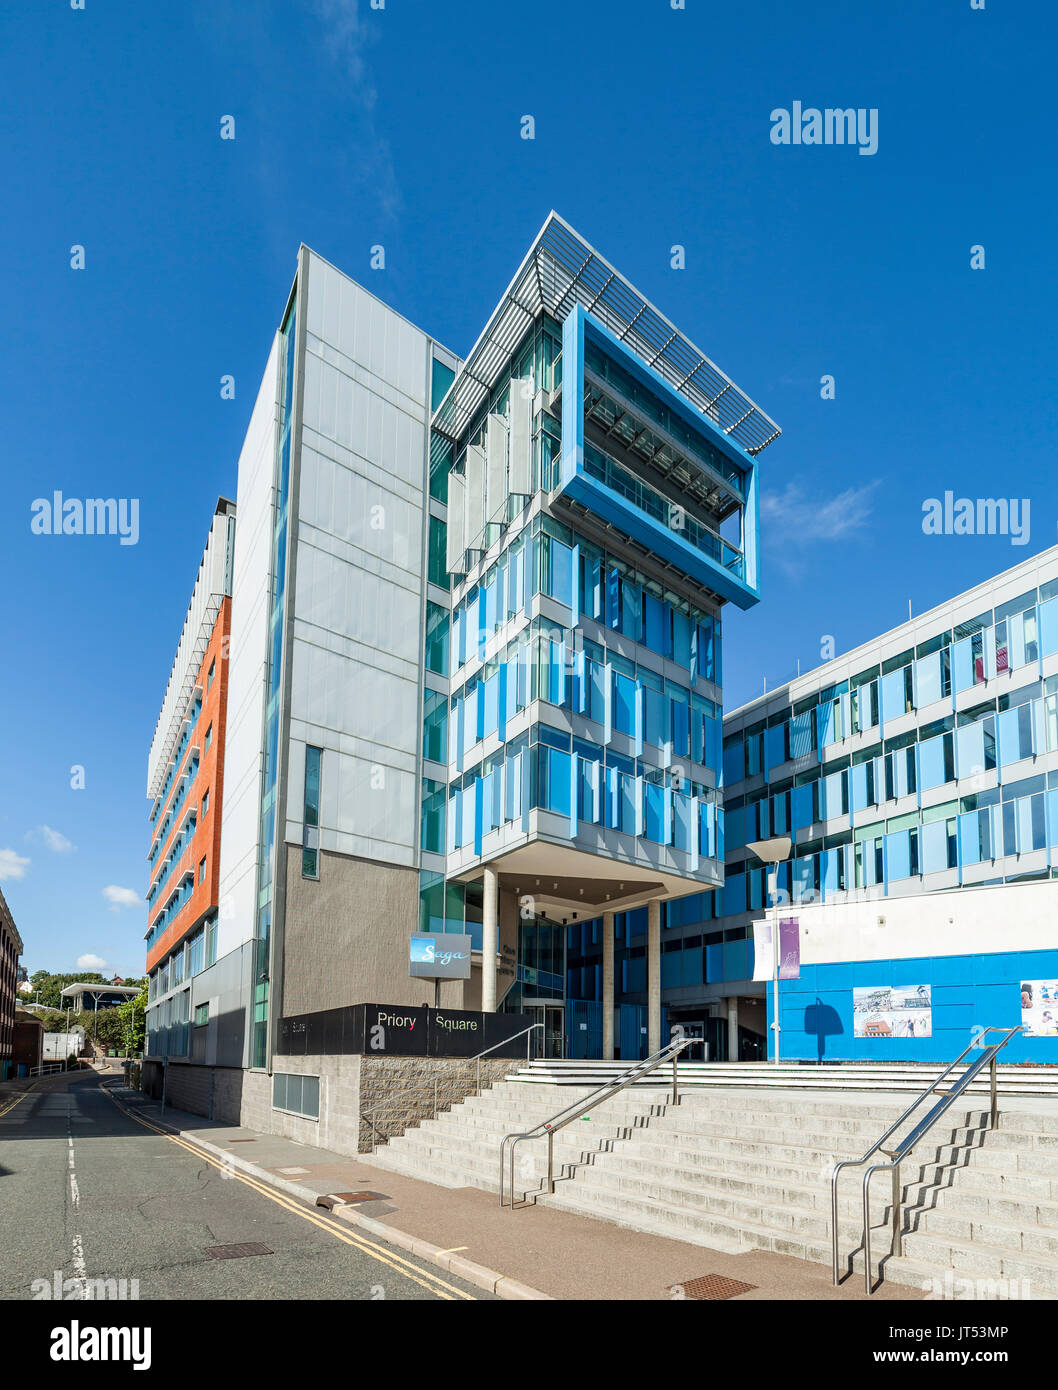 Saga Offices One Priory Square office block in Hastings. - Stock Image